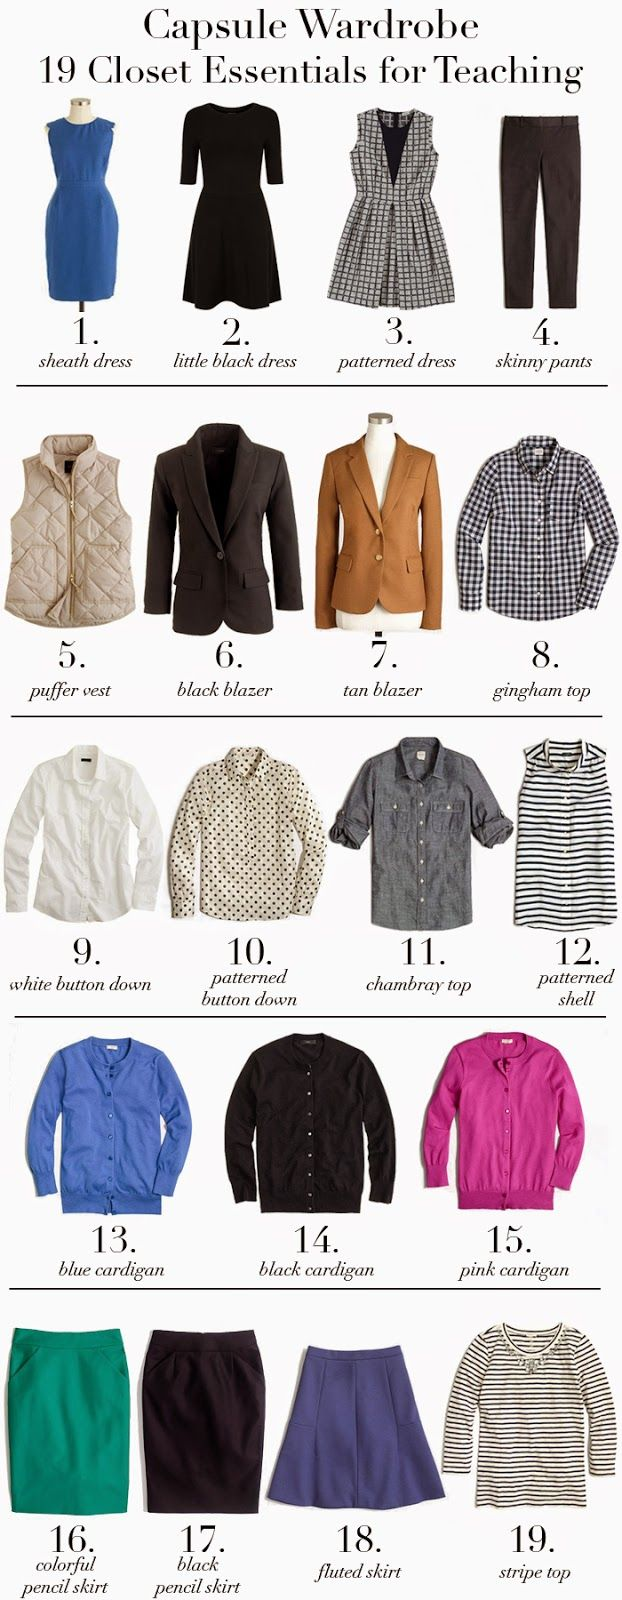 Teacher Capsule Wardrobe: 19 closet essentials for teaching